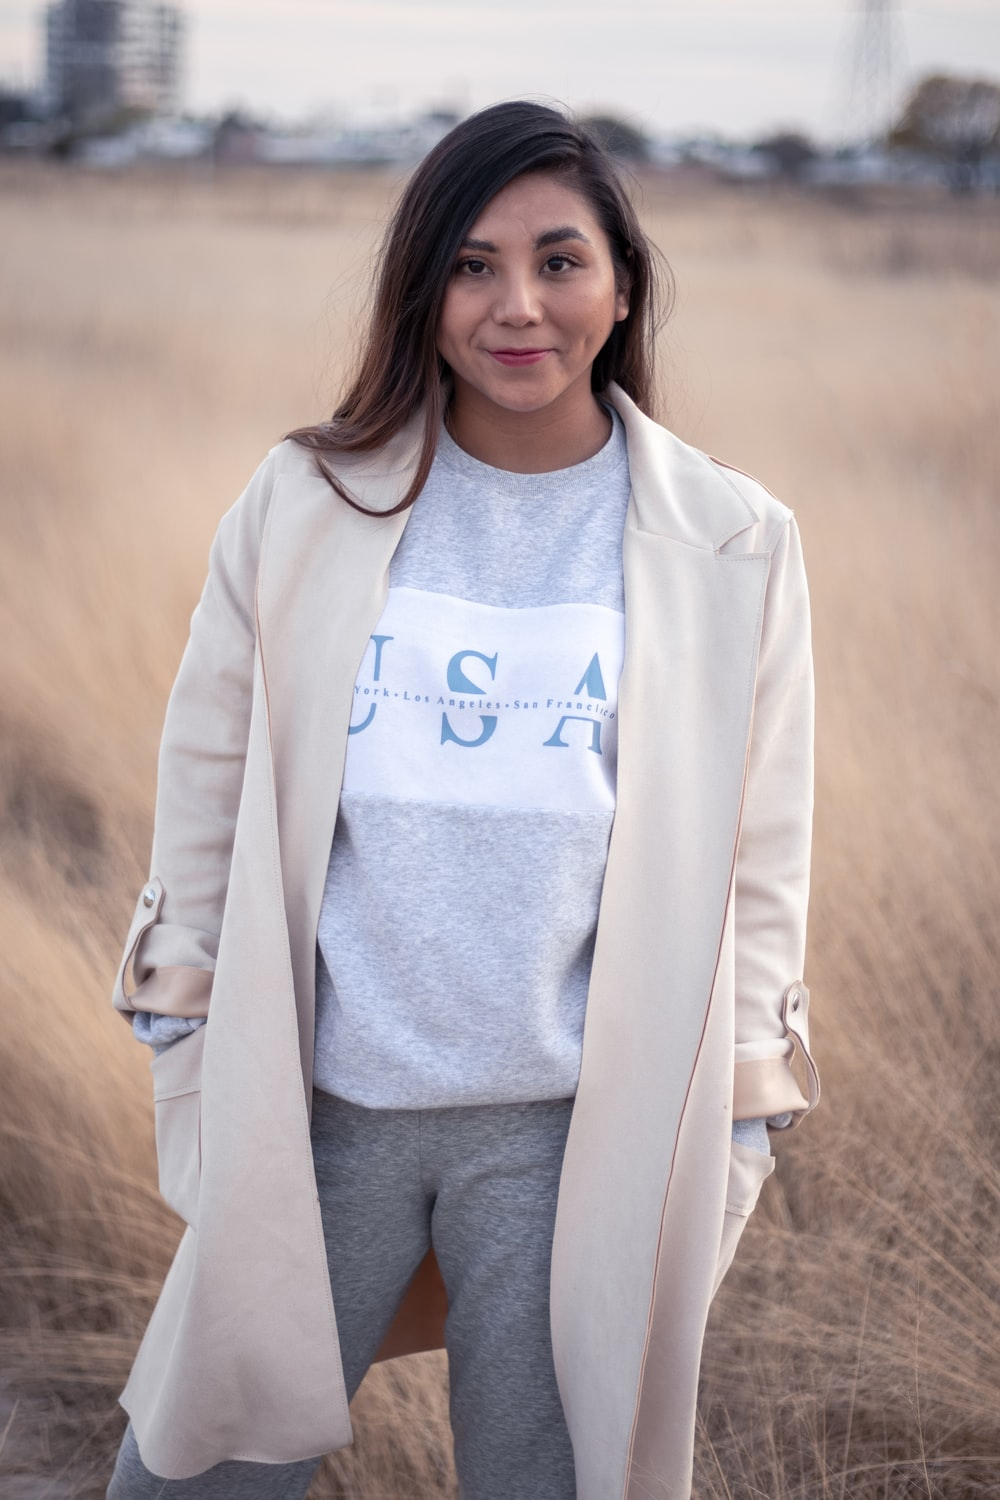 woman in white coat and gray shirt